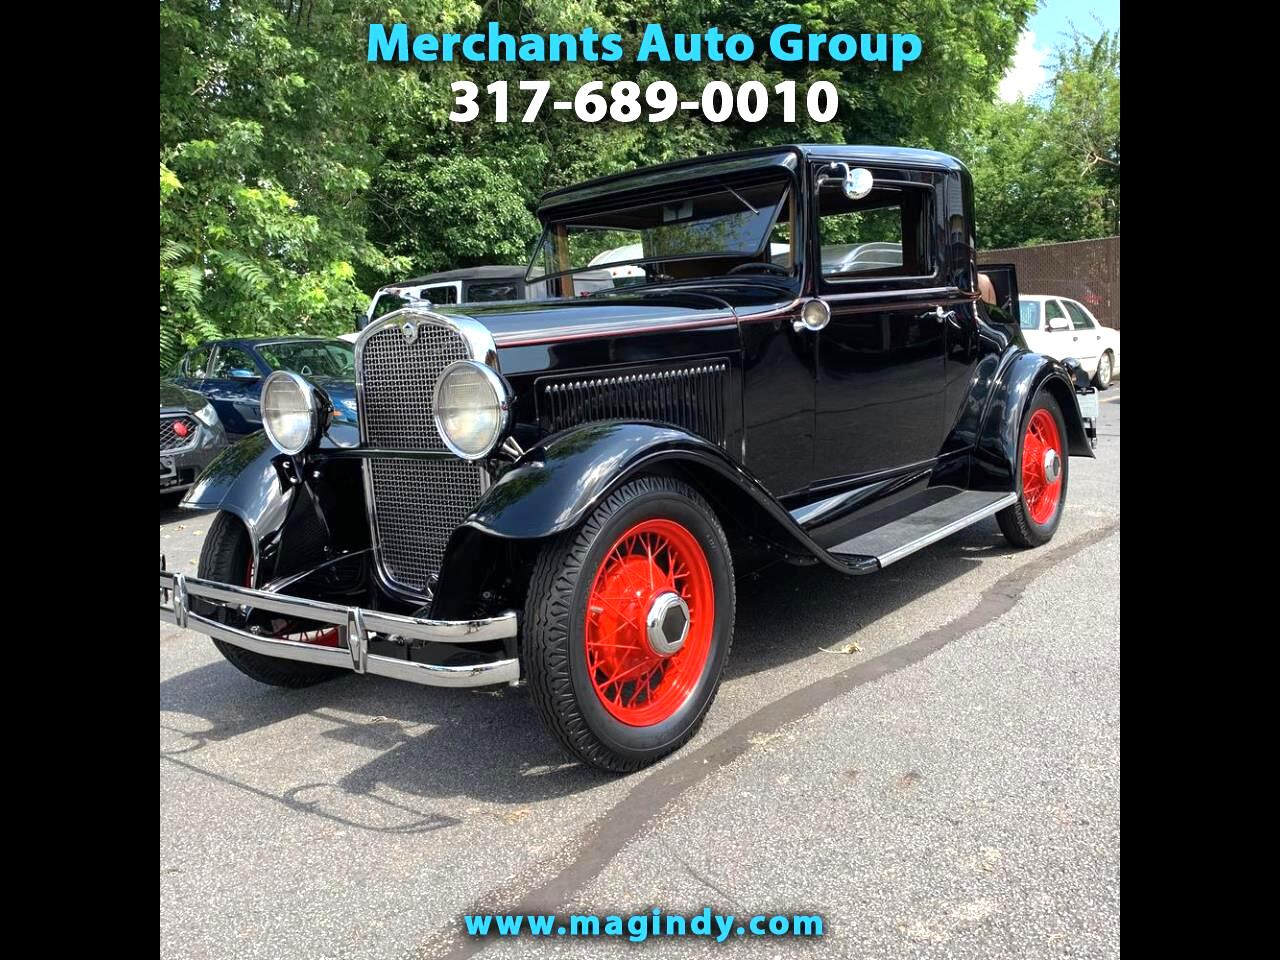 Used Cars for Sale Cicero IN 46034 Merchants Auto Group